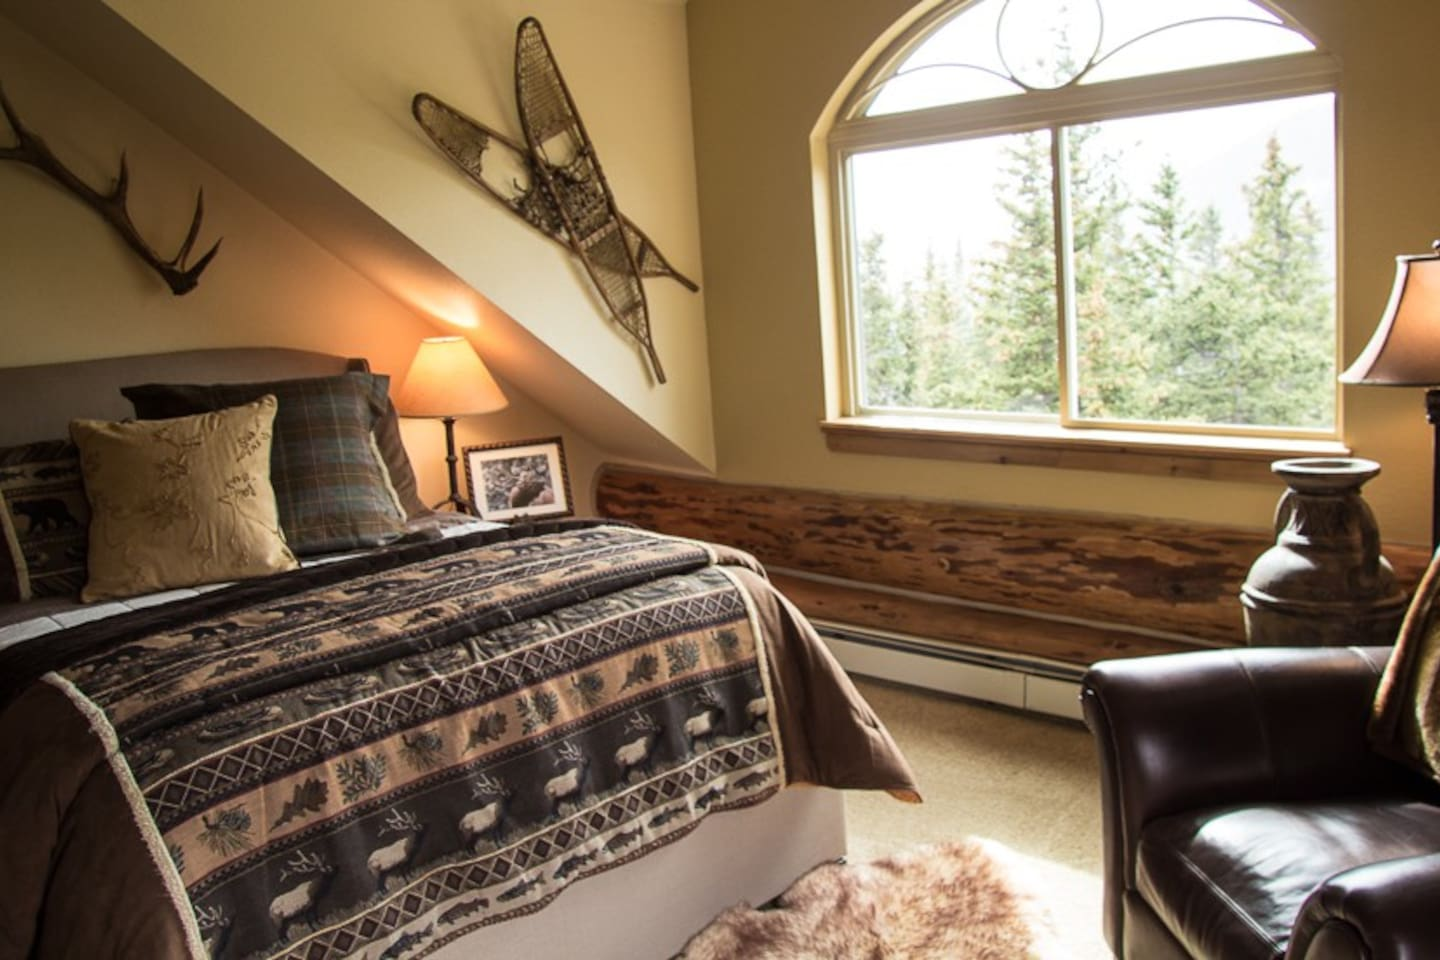 The Timberline Retreat makes you feel like you're truly above it all with its  180° timberline views. Be pampered by the queen bed, electric fireplace, and private deck.